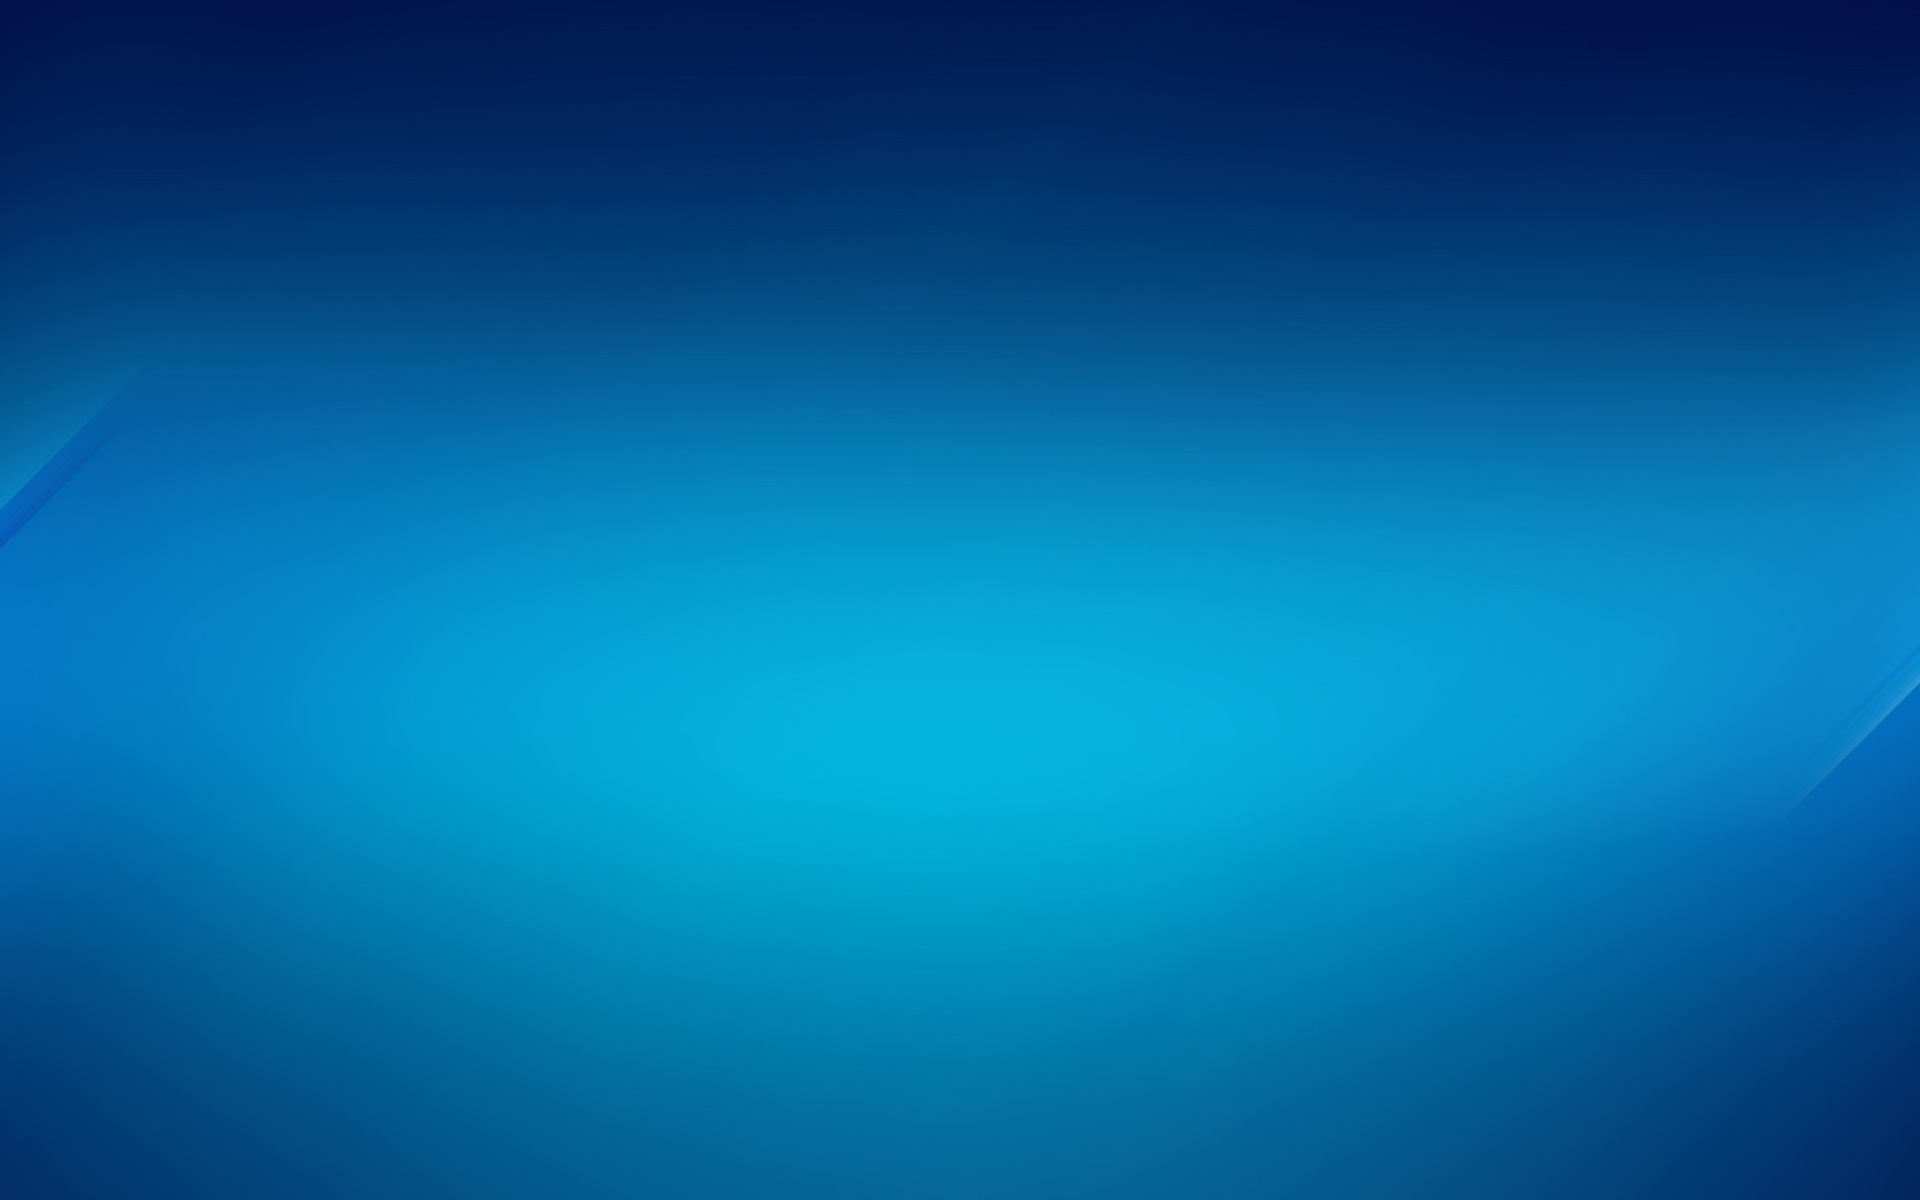 Blue widescreen background fondos de pantalla gratis - Fondos full hd ...